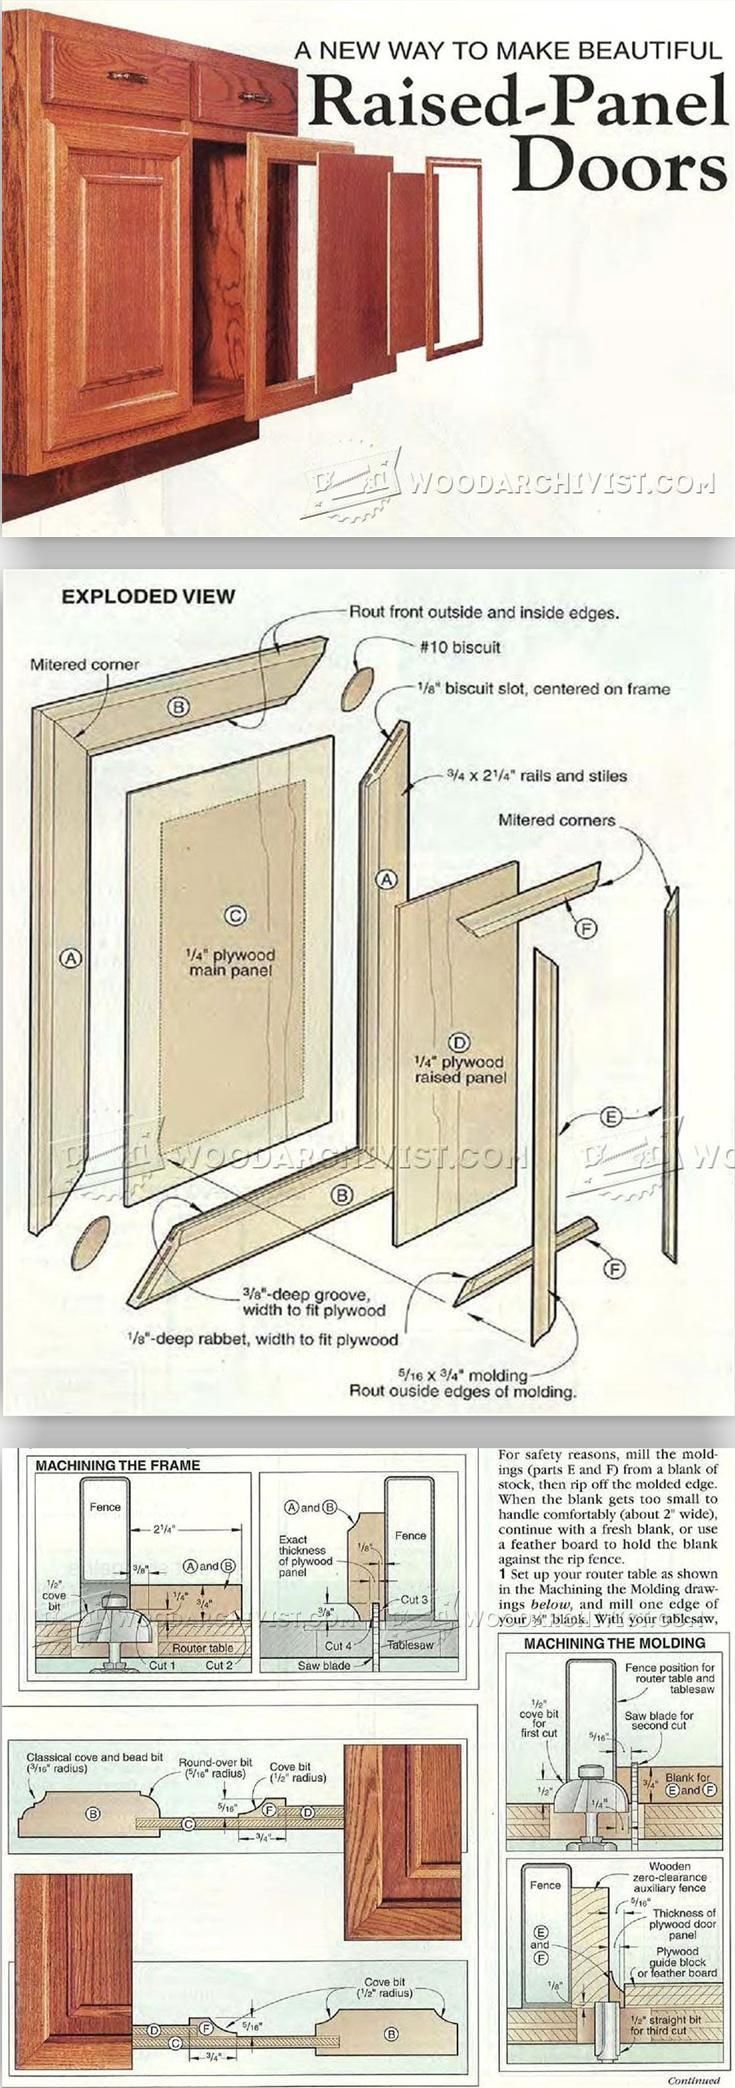 Making Raised Panel Doors Cabinet Door Construction And Techniques Woodworking Plans Raised Panel Doors Woodworking Cabinets